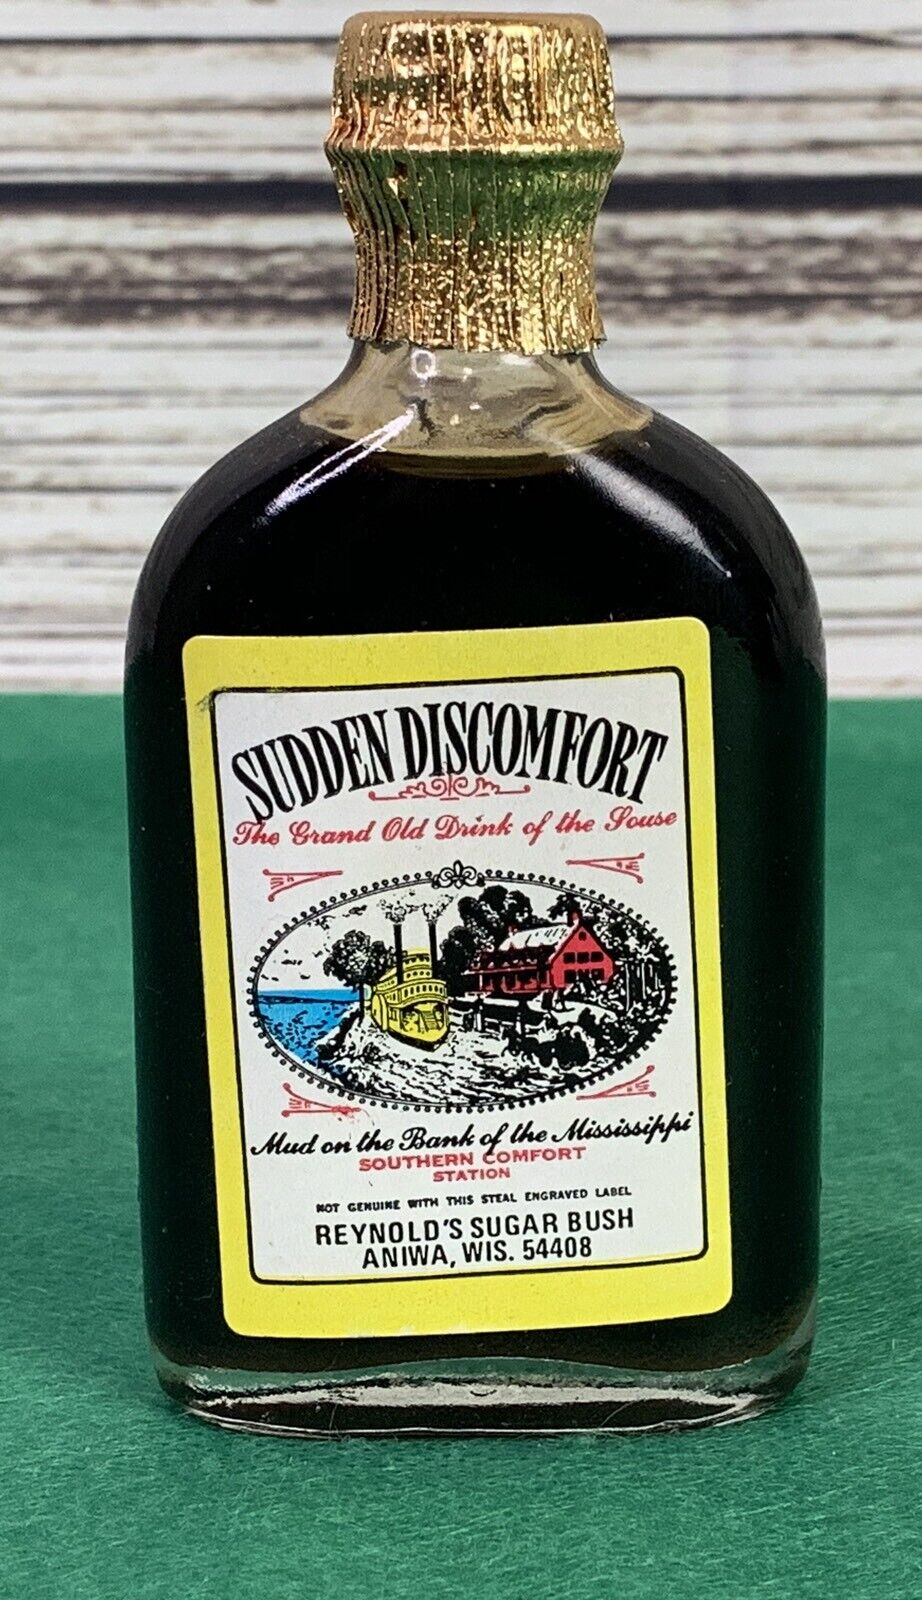 Sudden Discomfort Faux Miniature Whiskey Bottle Maple Syrup Knotts Berry Farm Ebay